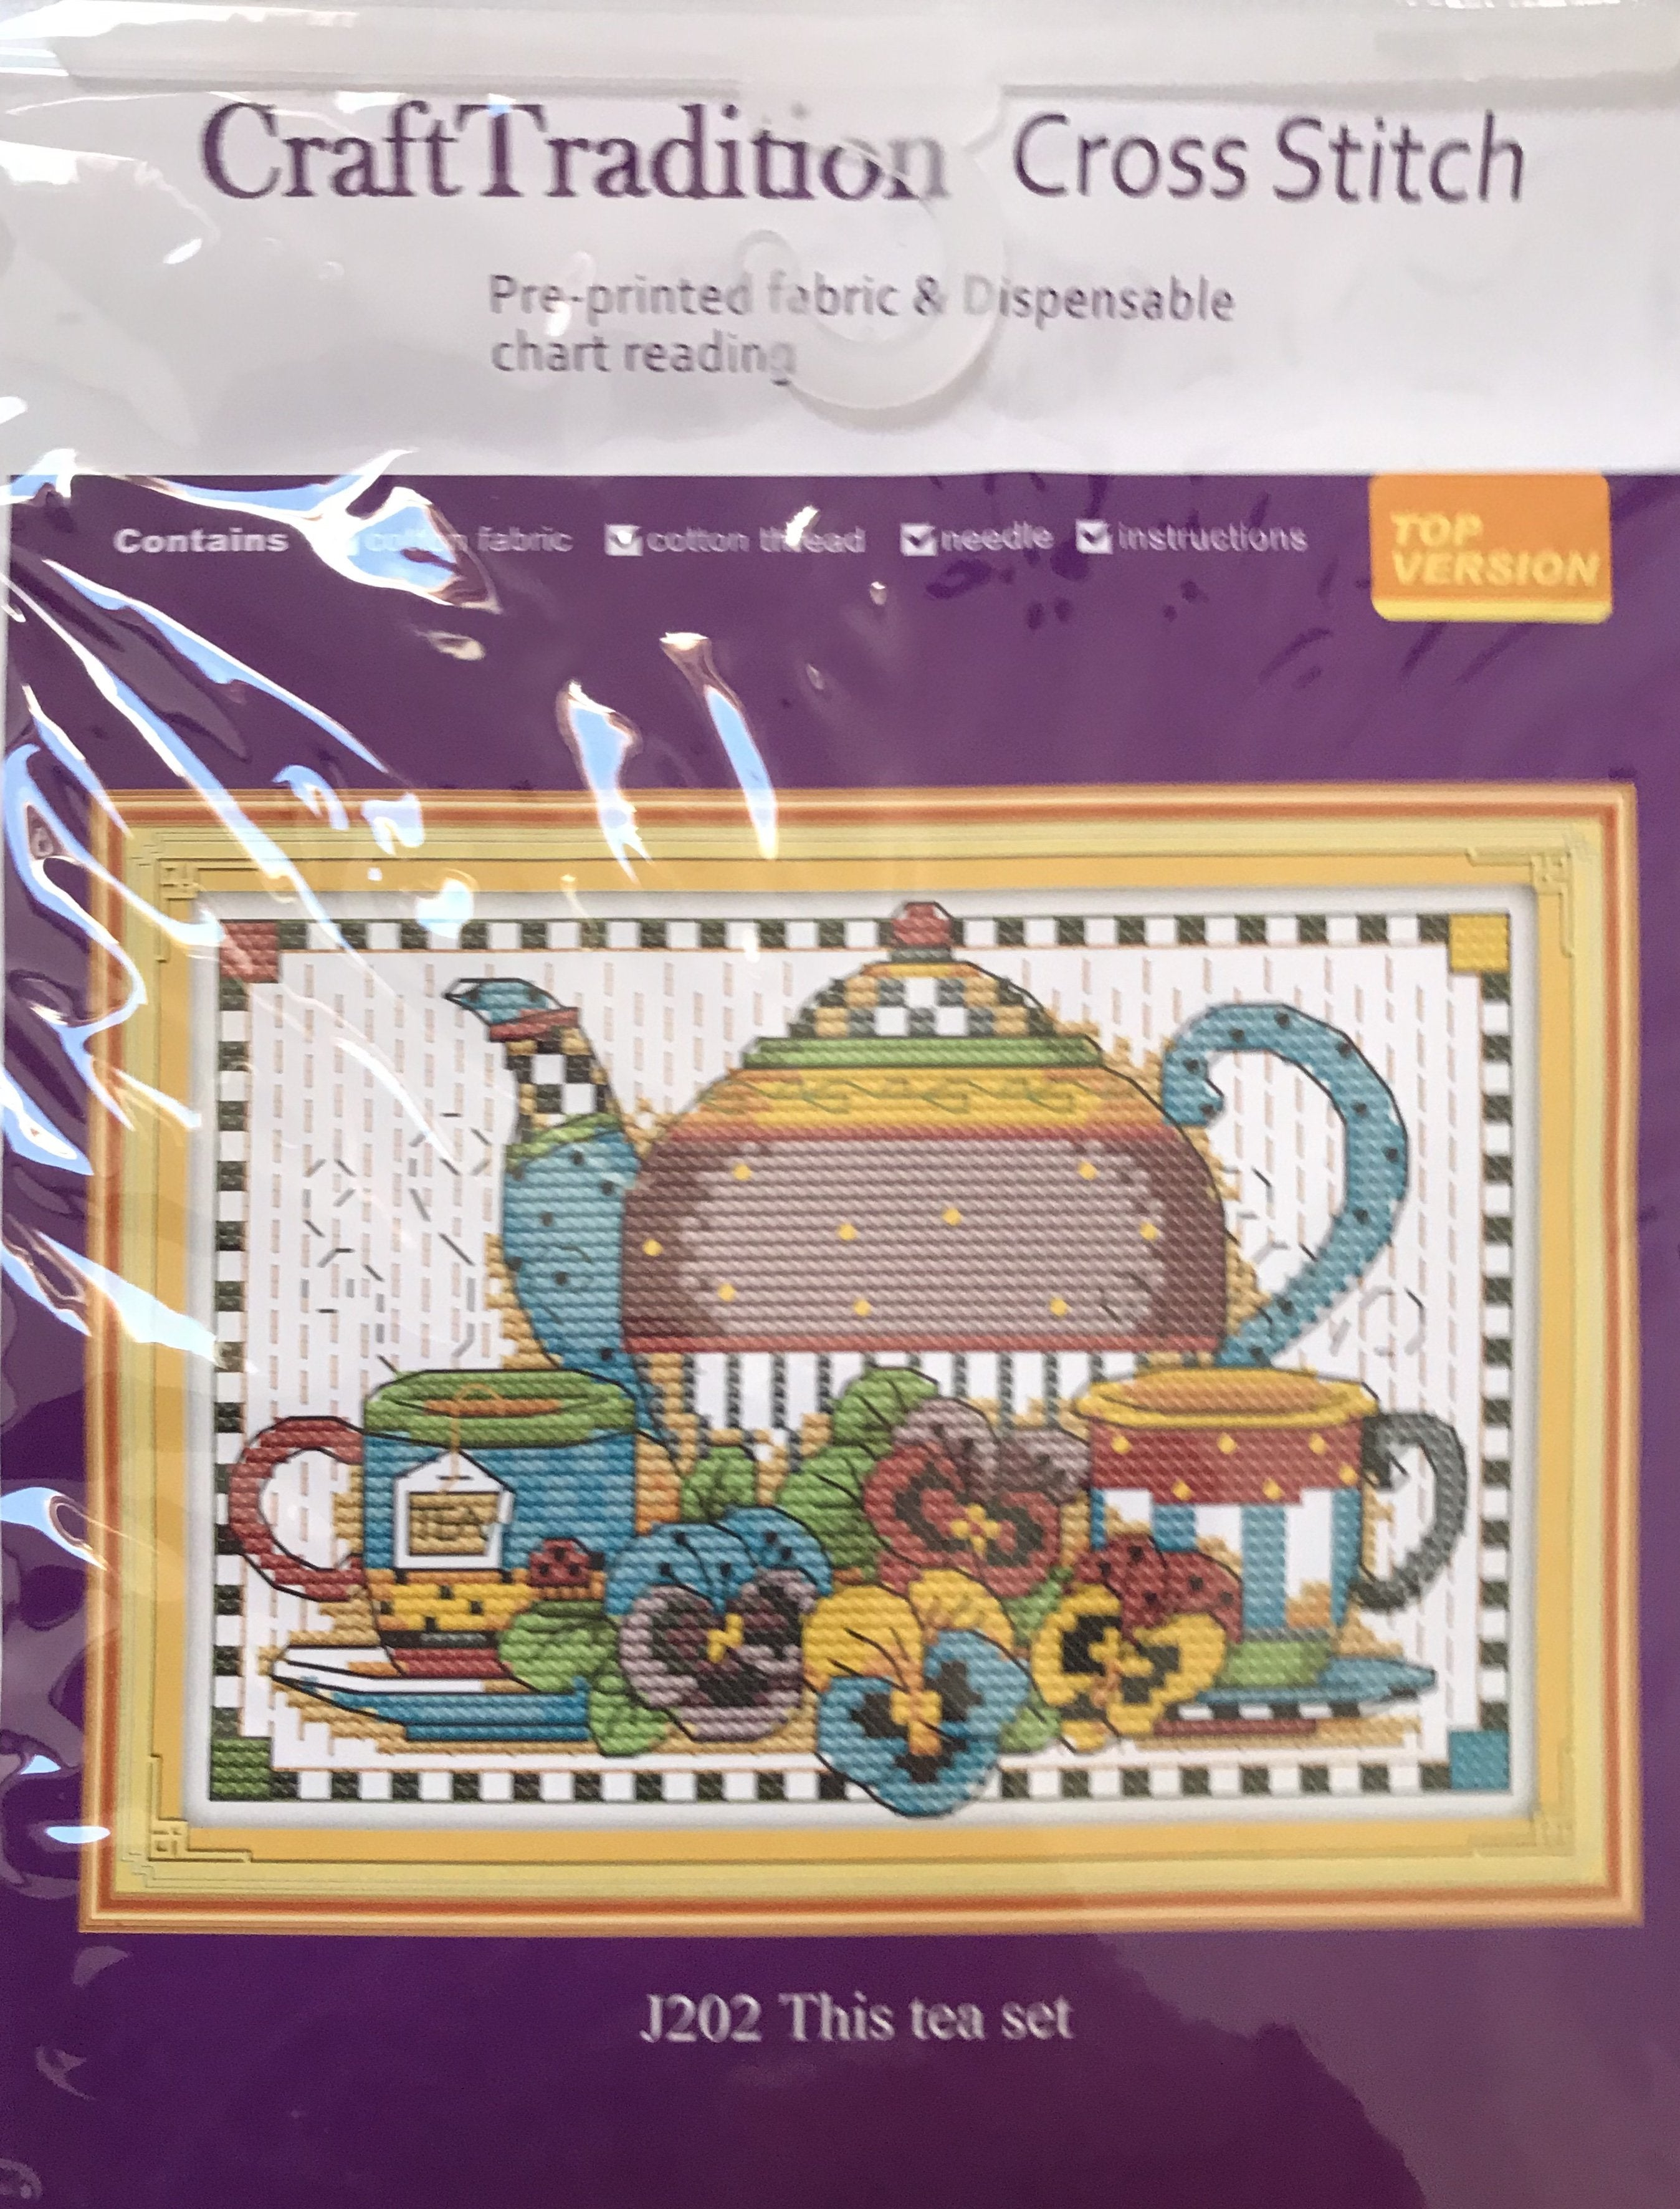 Cross stitch kit complete with instructions